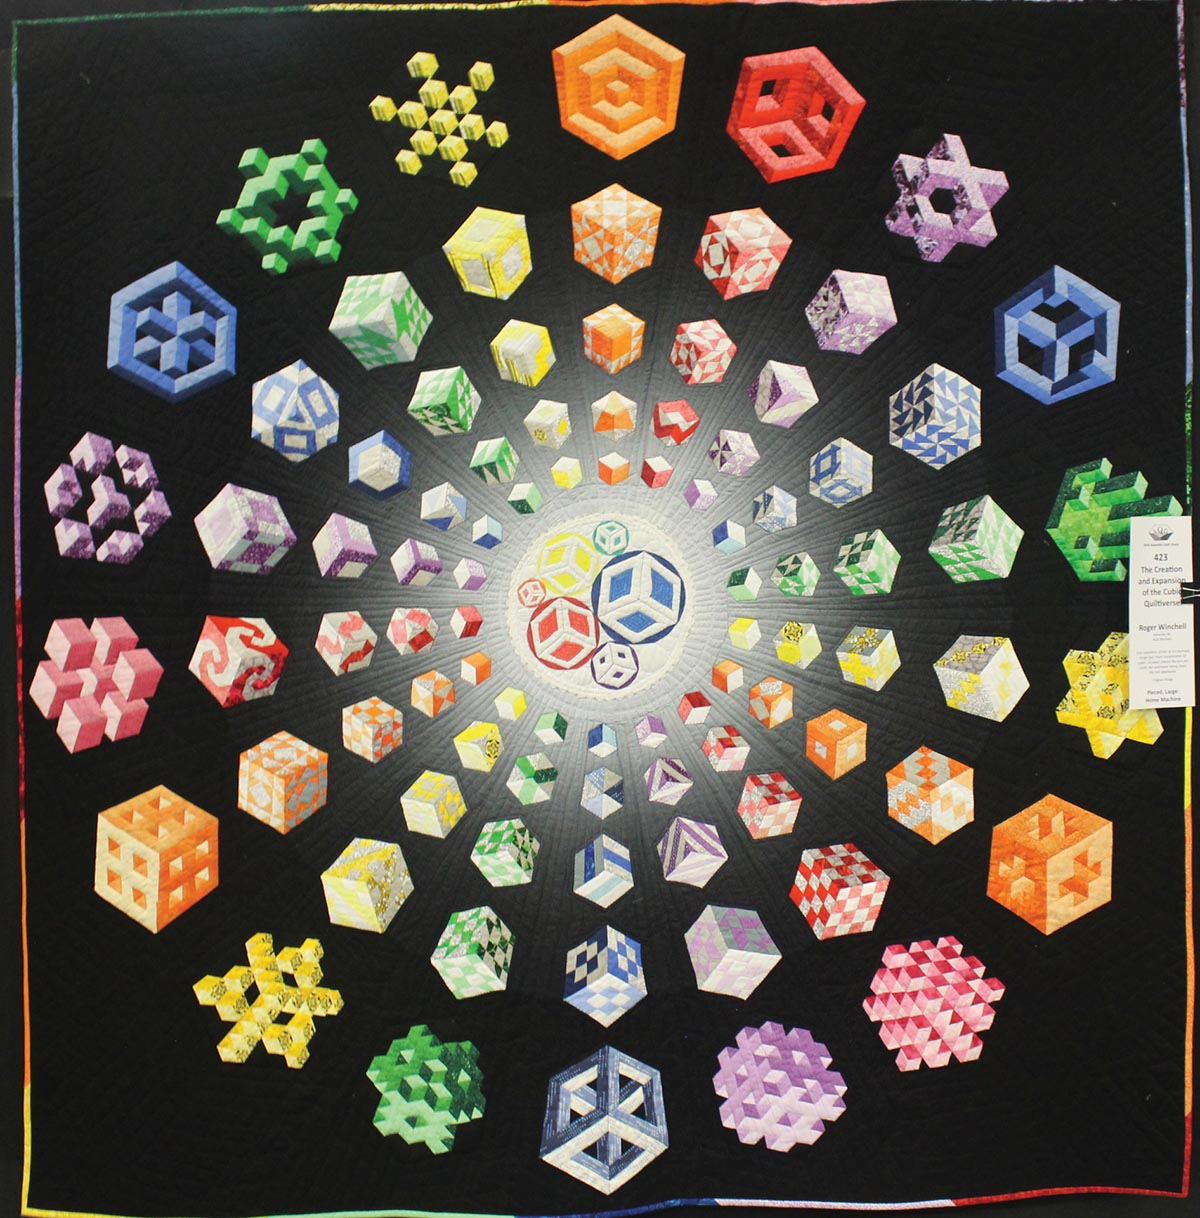 The Creation and Expansion of the Cubic Quiltiverse, 2018 winner of Viewers' Choice prize. Roger Winchell, artist